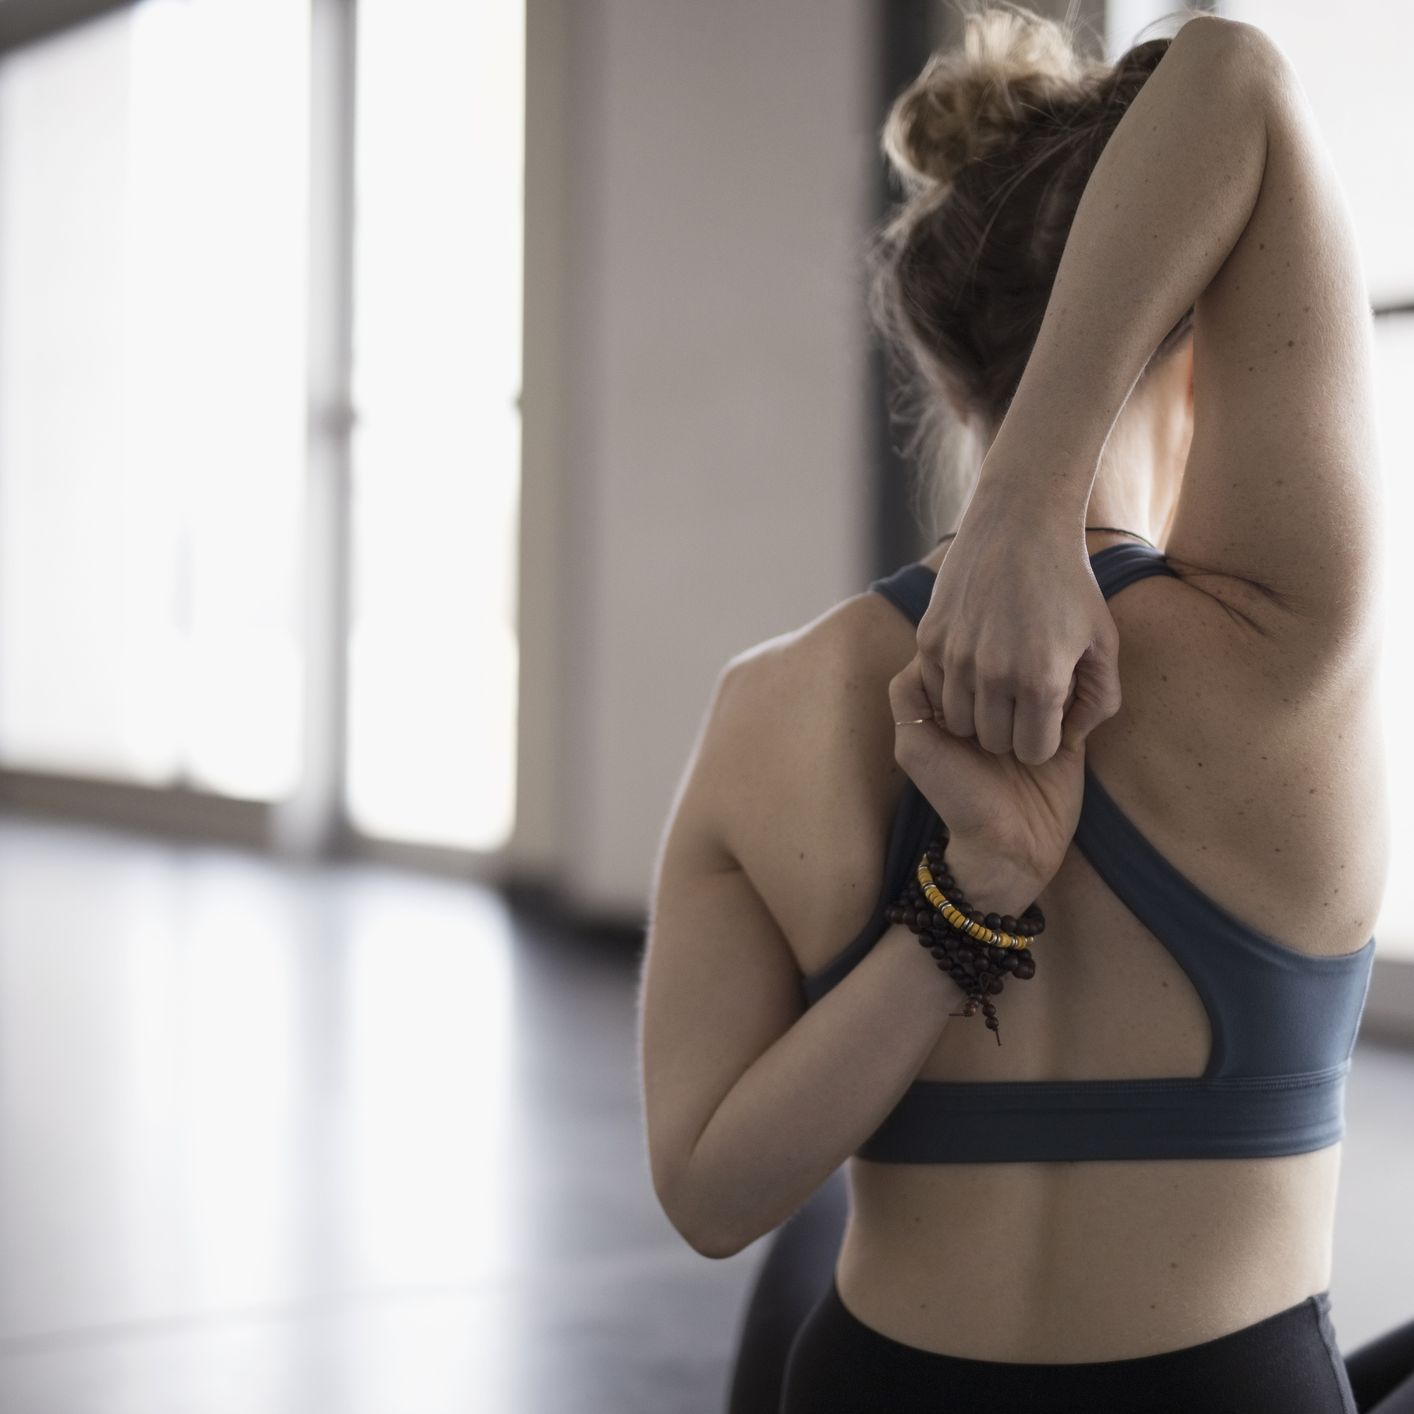 How to Stretch Your Supraspinatus